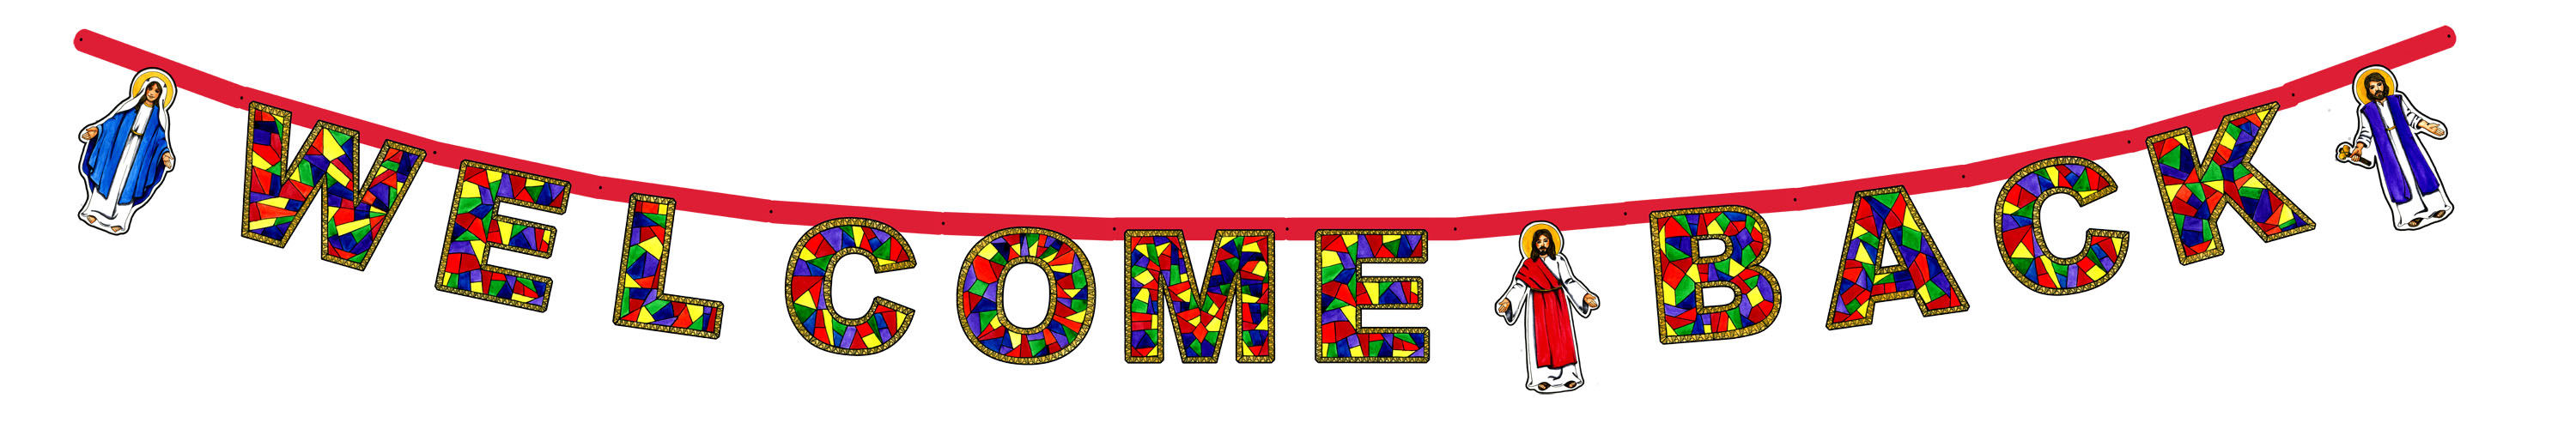 3000x500 Your Welcome Clip Art Cliparts